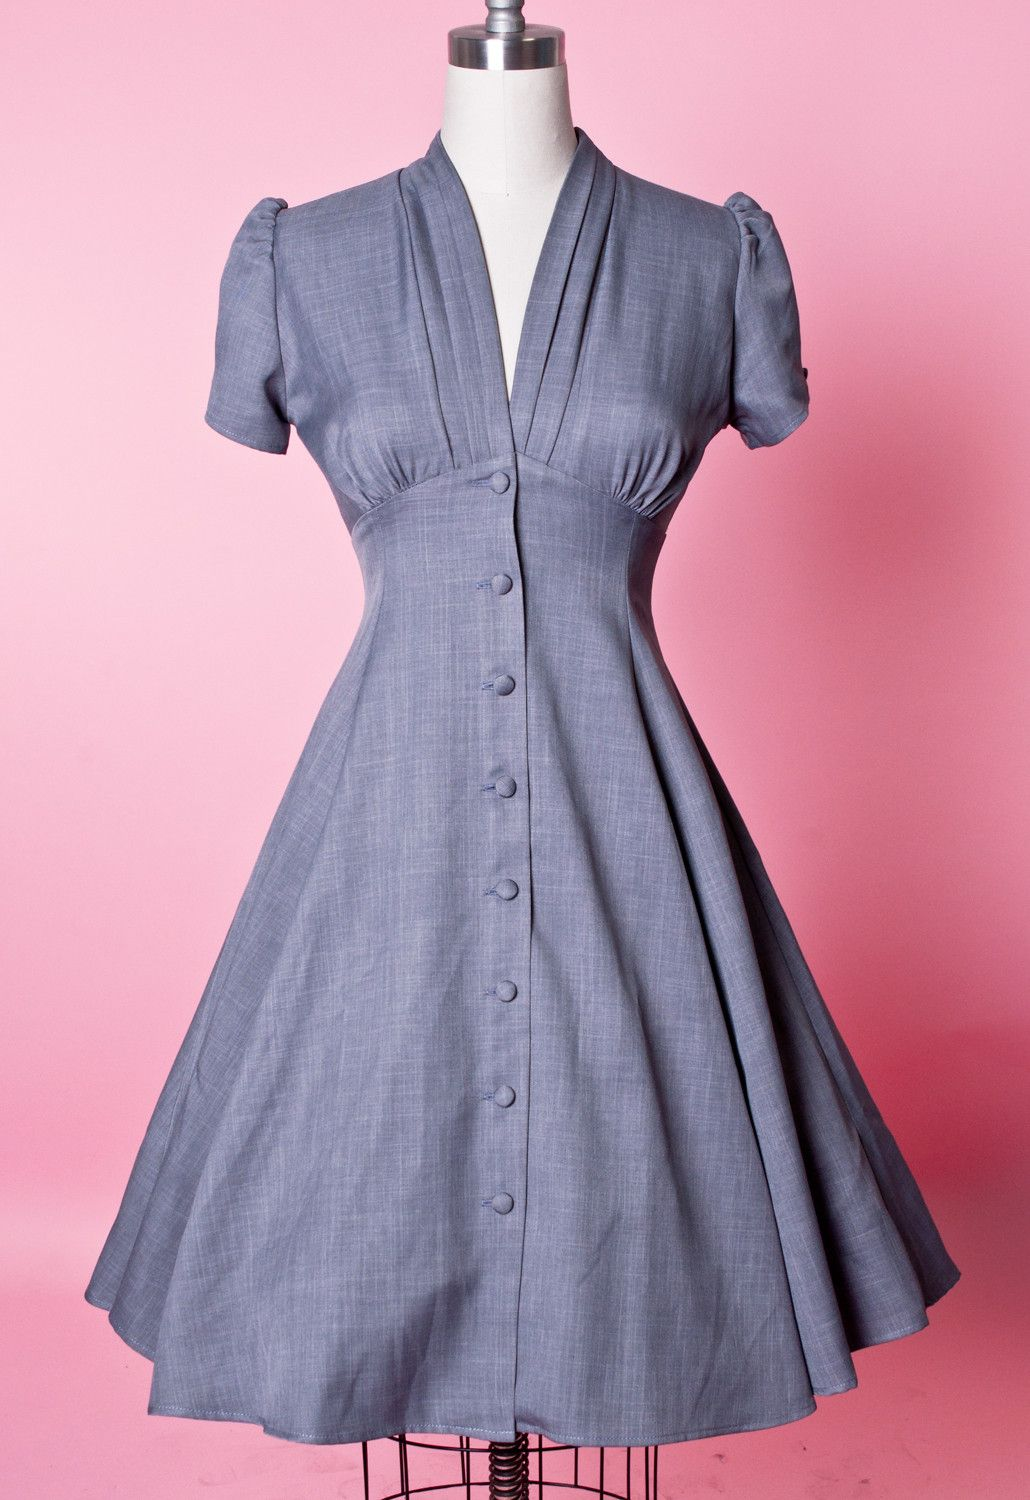 Manhattan Dress - Skyscraper Grey | Vestidos bonitos, Patrones de ...